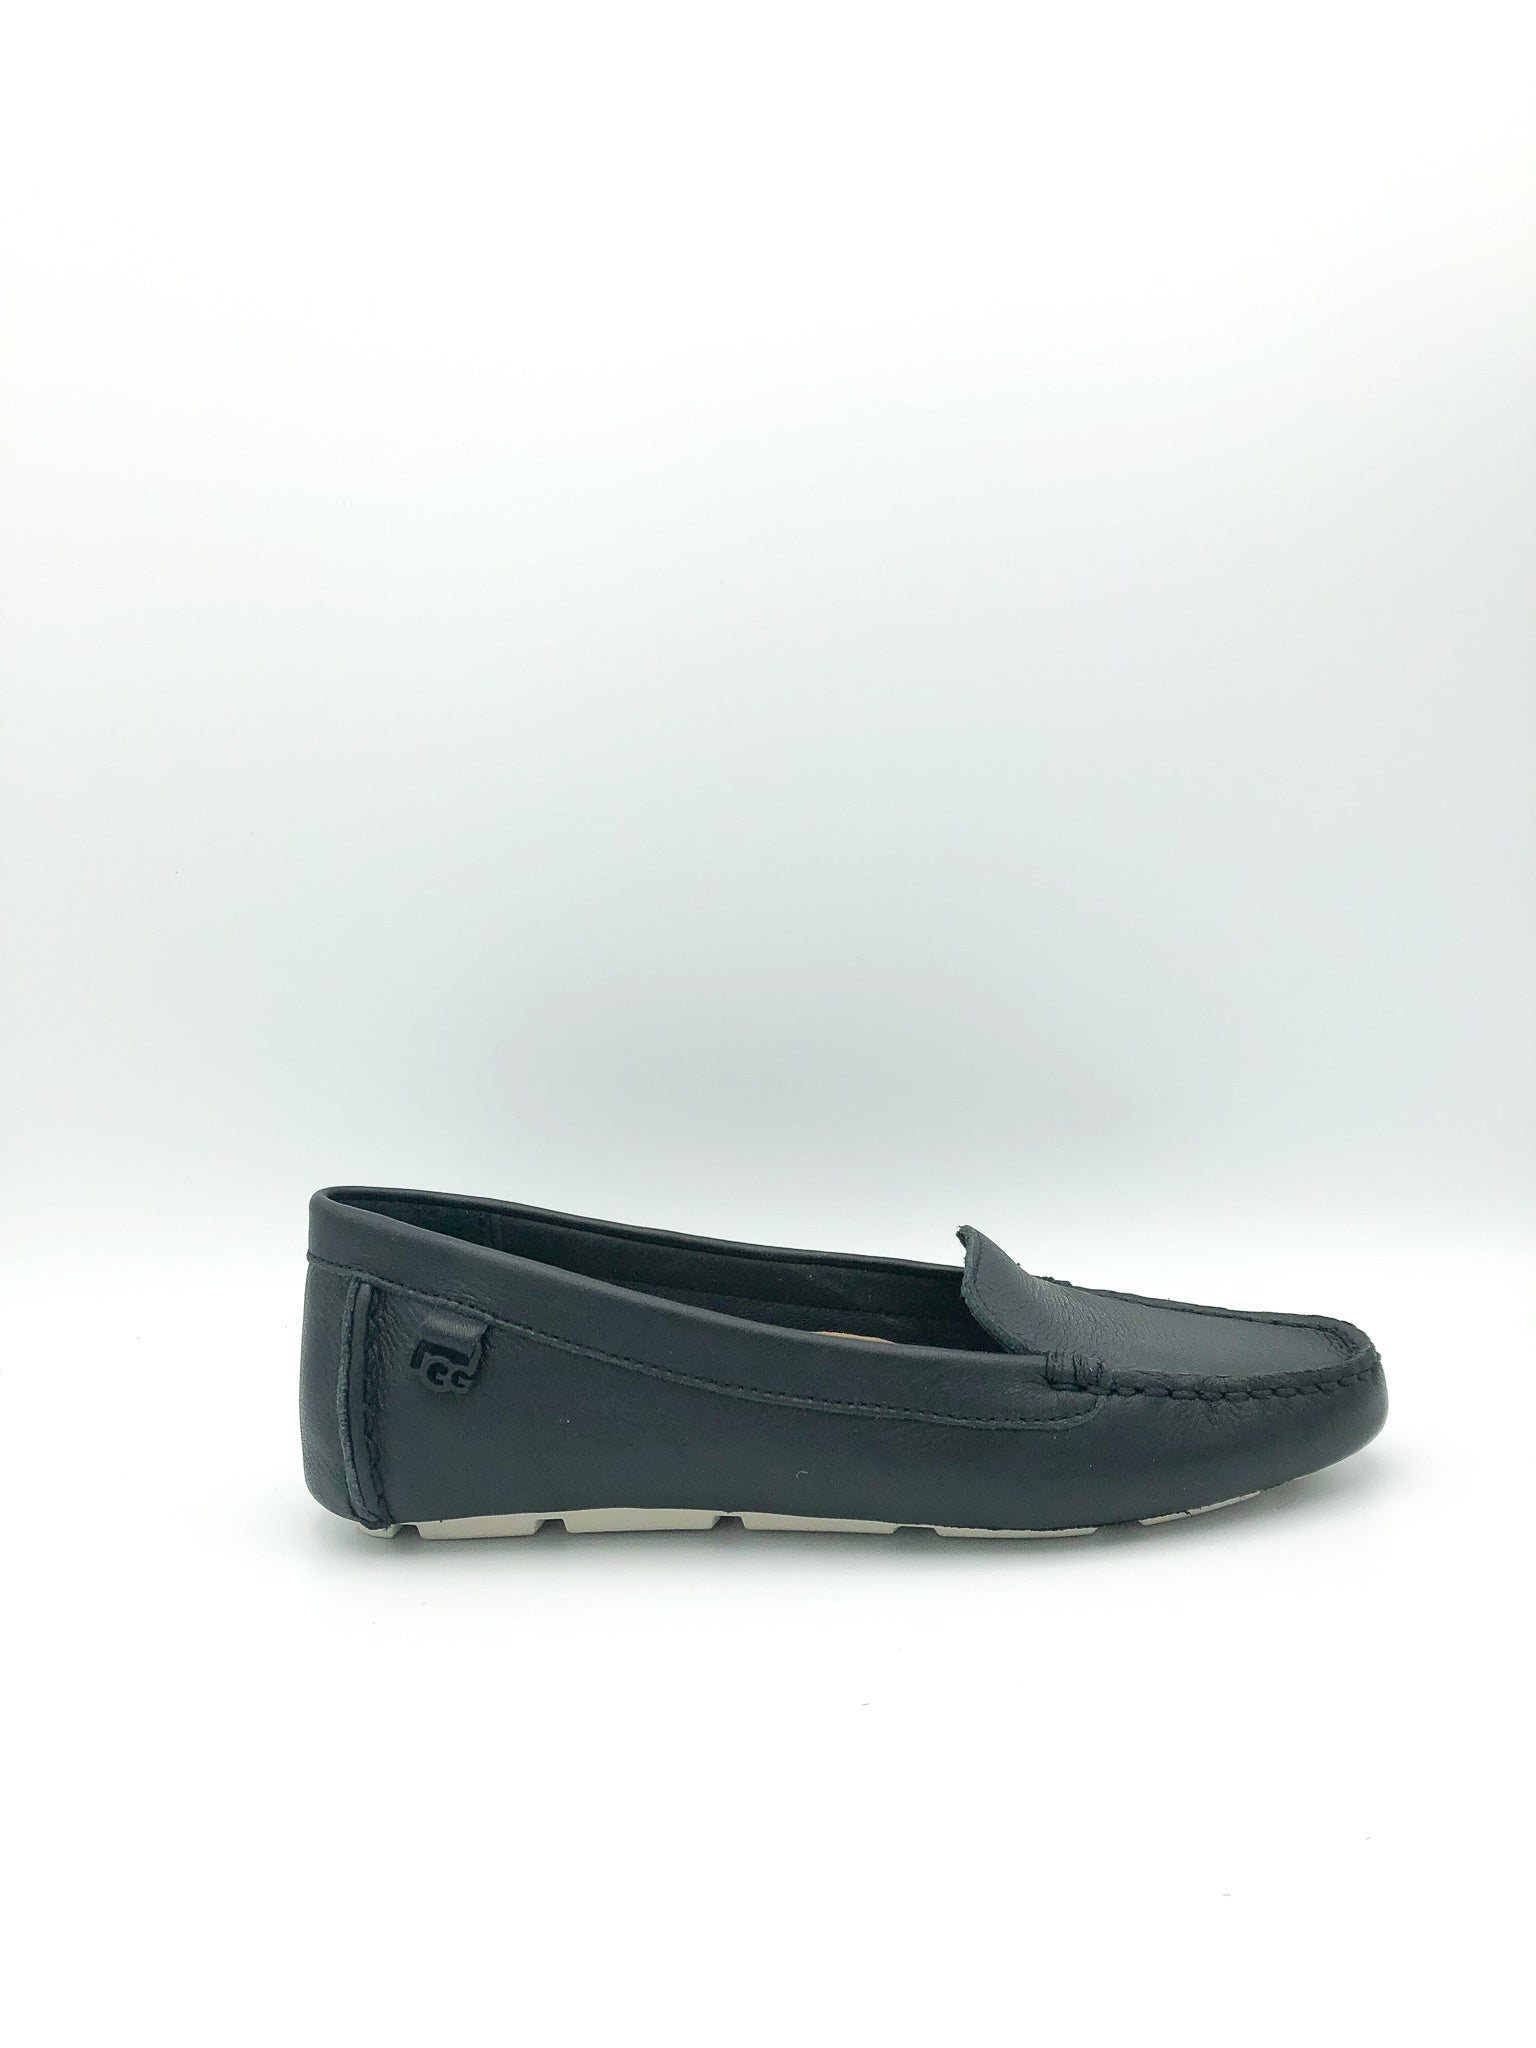 UGG - FLORES FLAT IN BLACK LEATHER